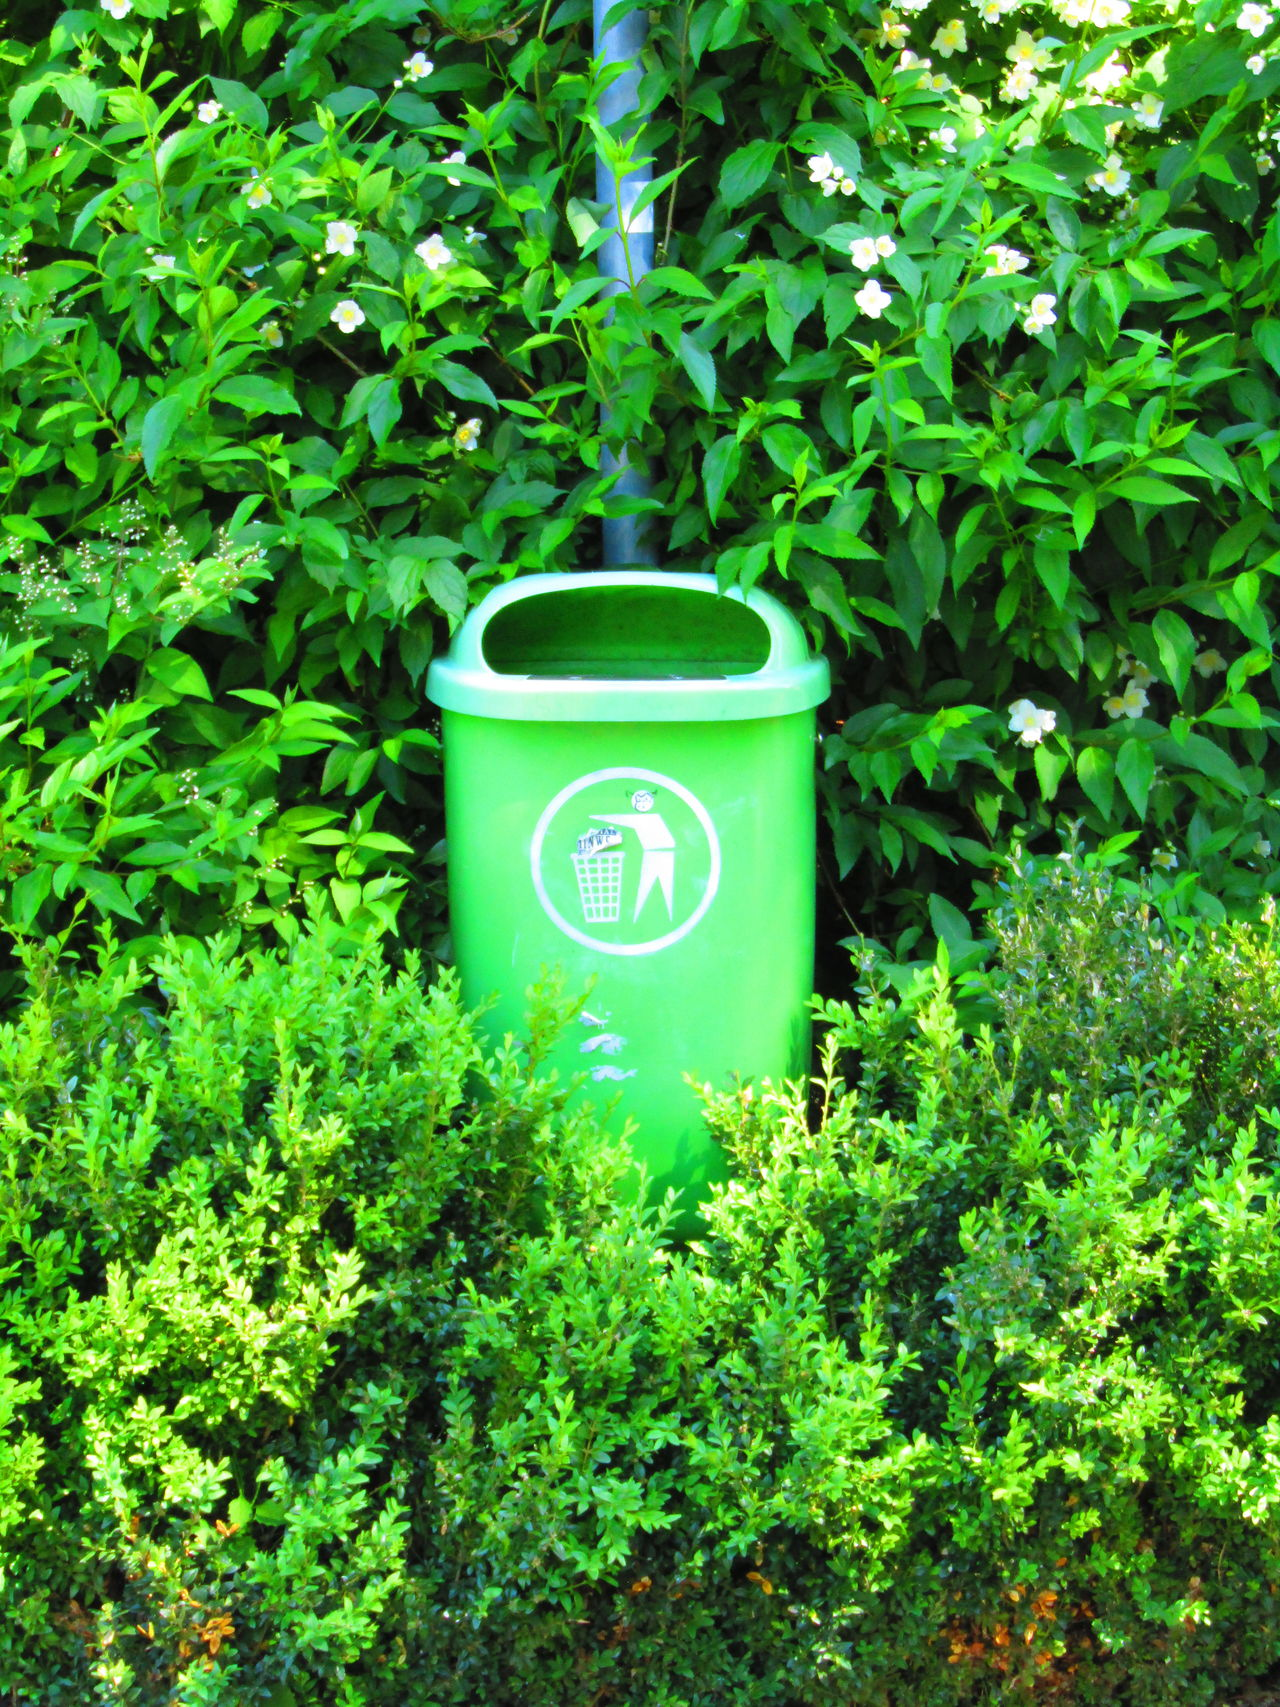 Mistkübel Trash Trashcan Green Color Growth Plant Day No People Nature Outdoors Freshness Austria Vienna Wien Rodaun